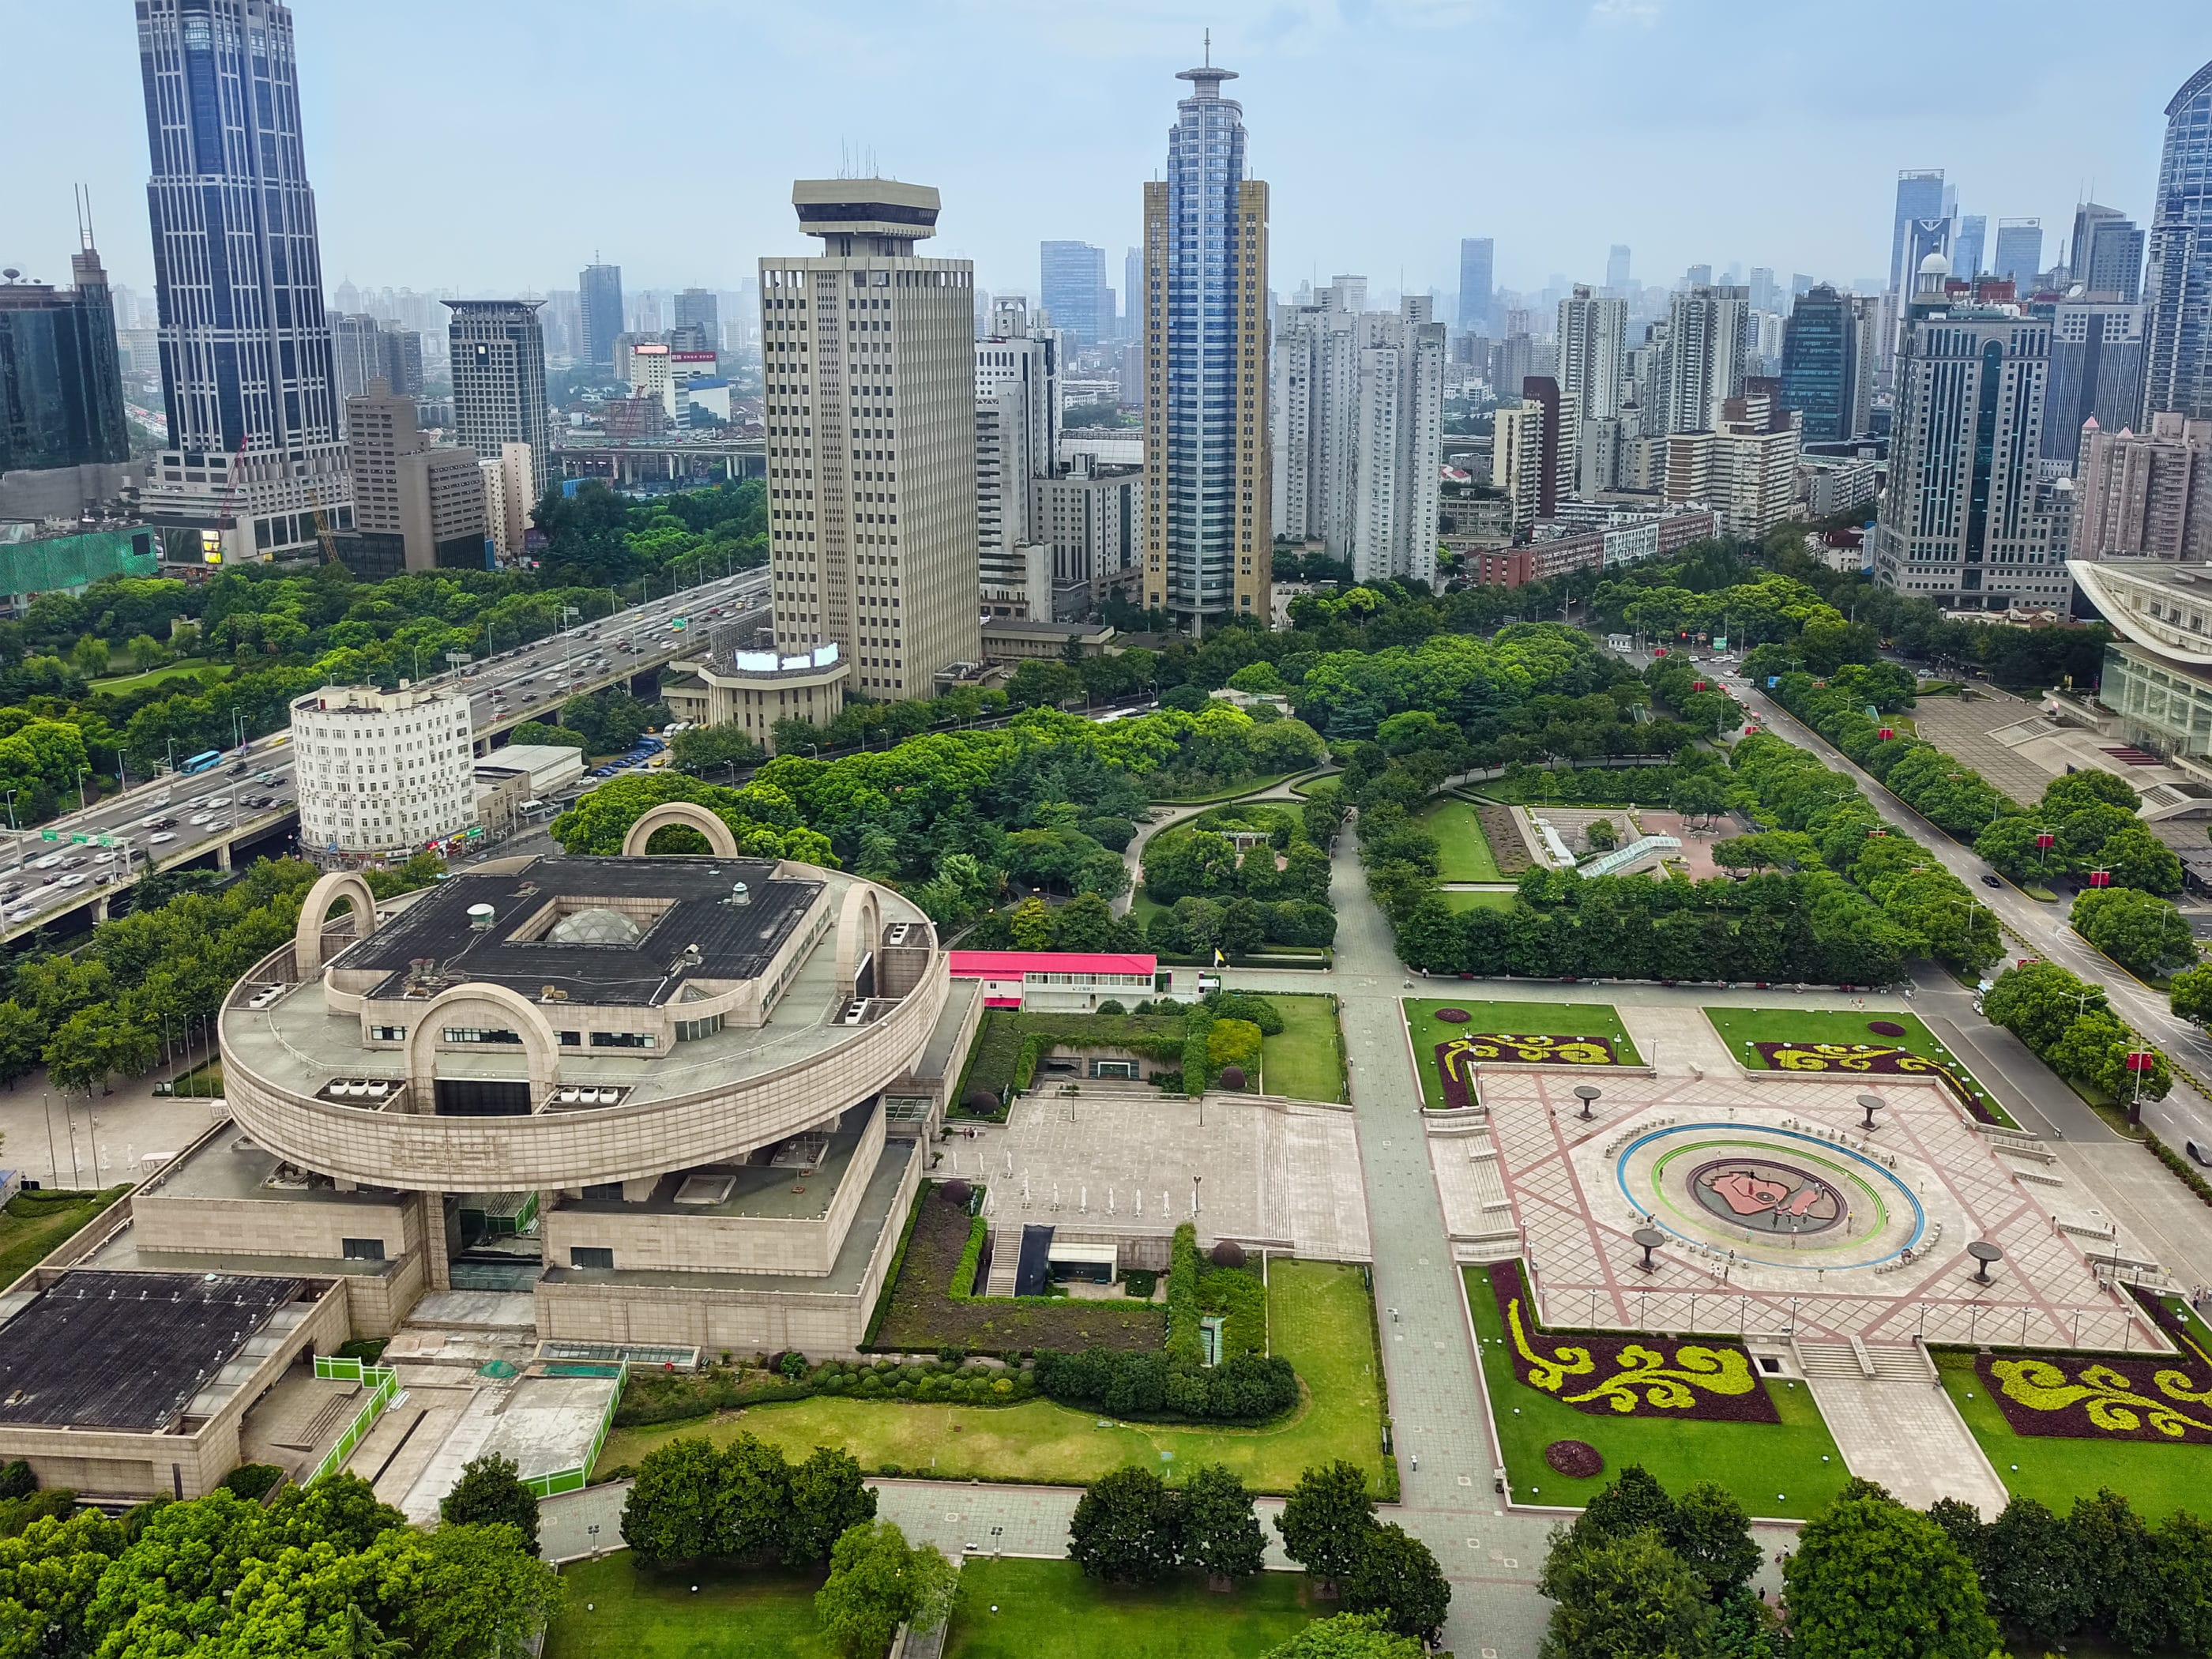 Things to do in Shanghai: People's Square and People's Park